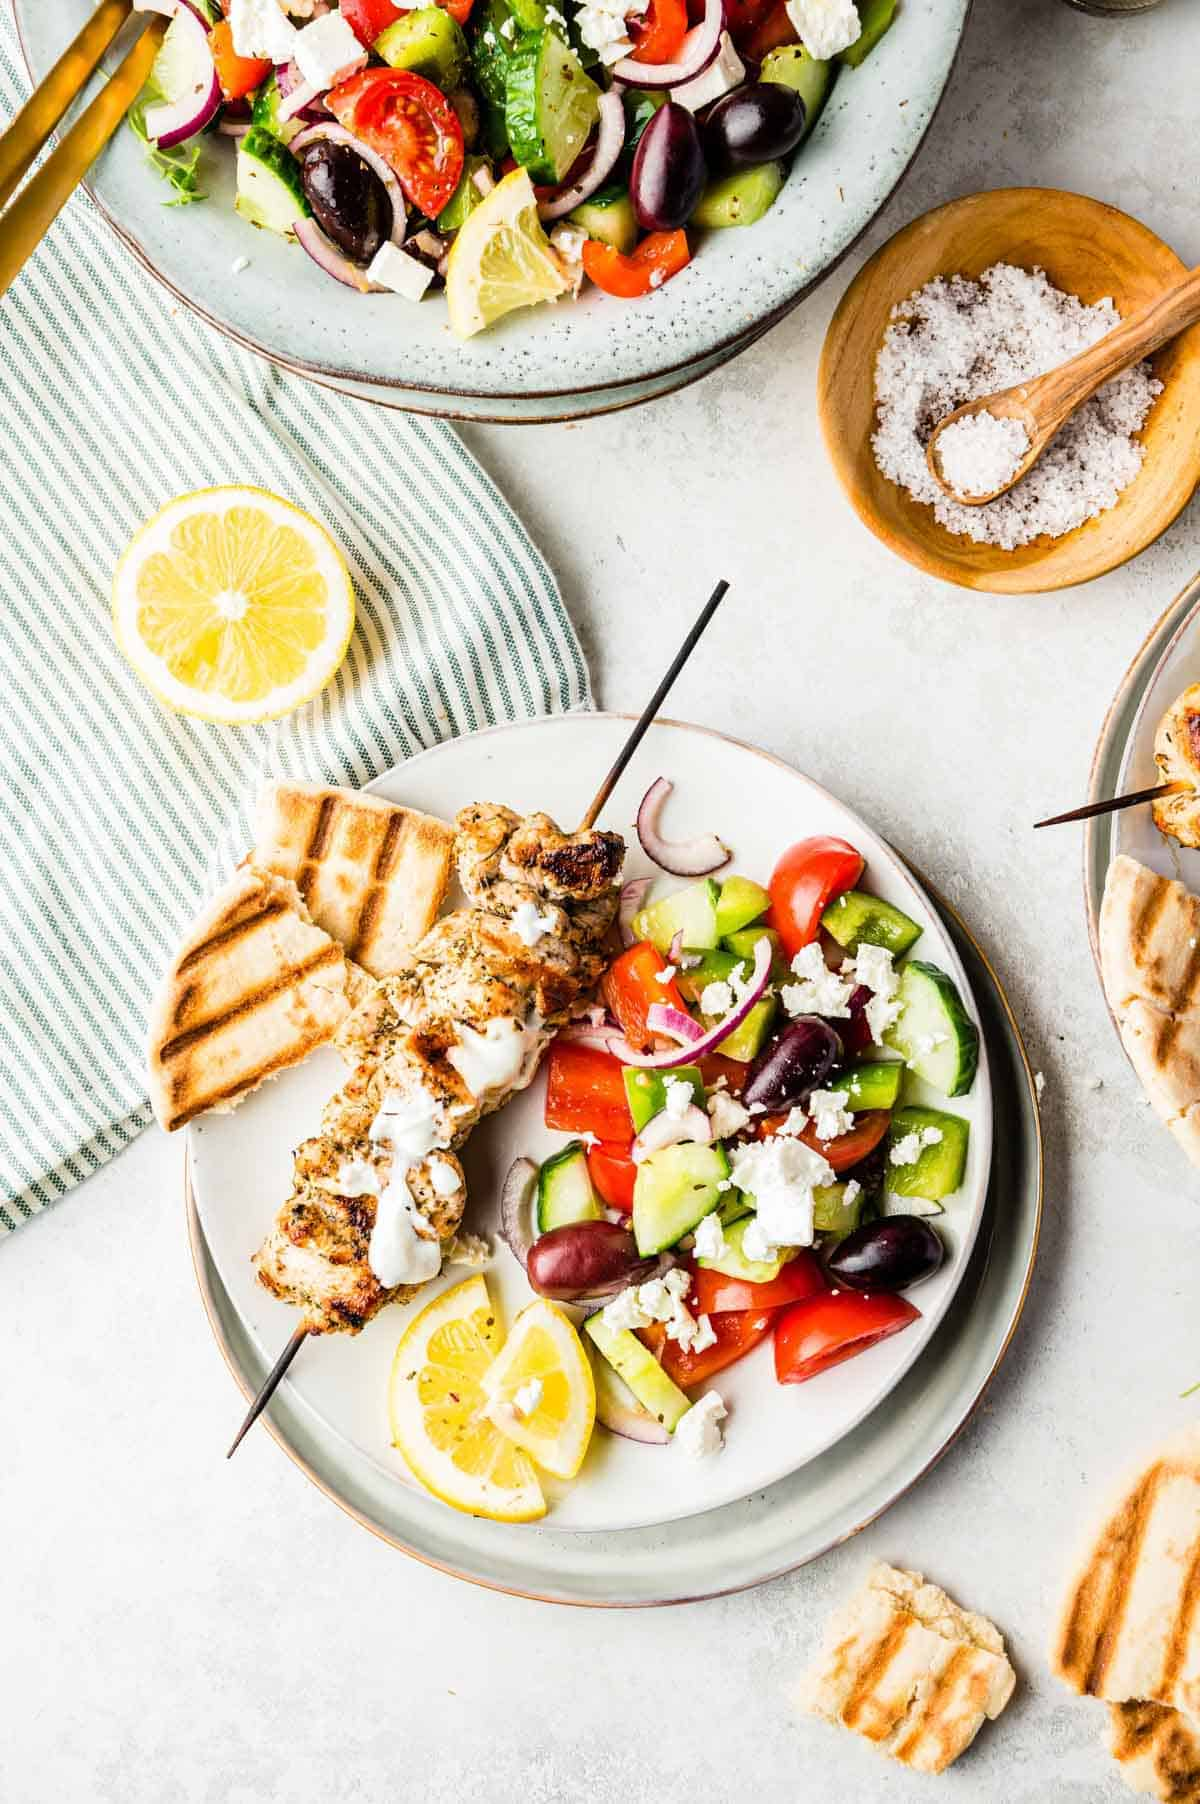 A Side Serving of Greek Salad on a Plate with Bread and Grilled Chicken